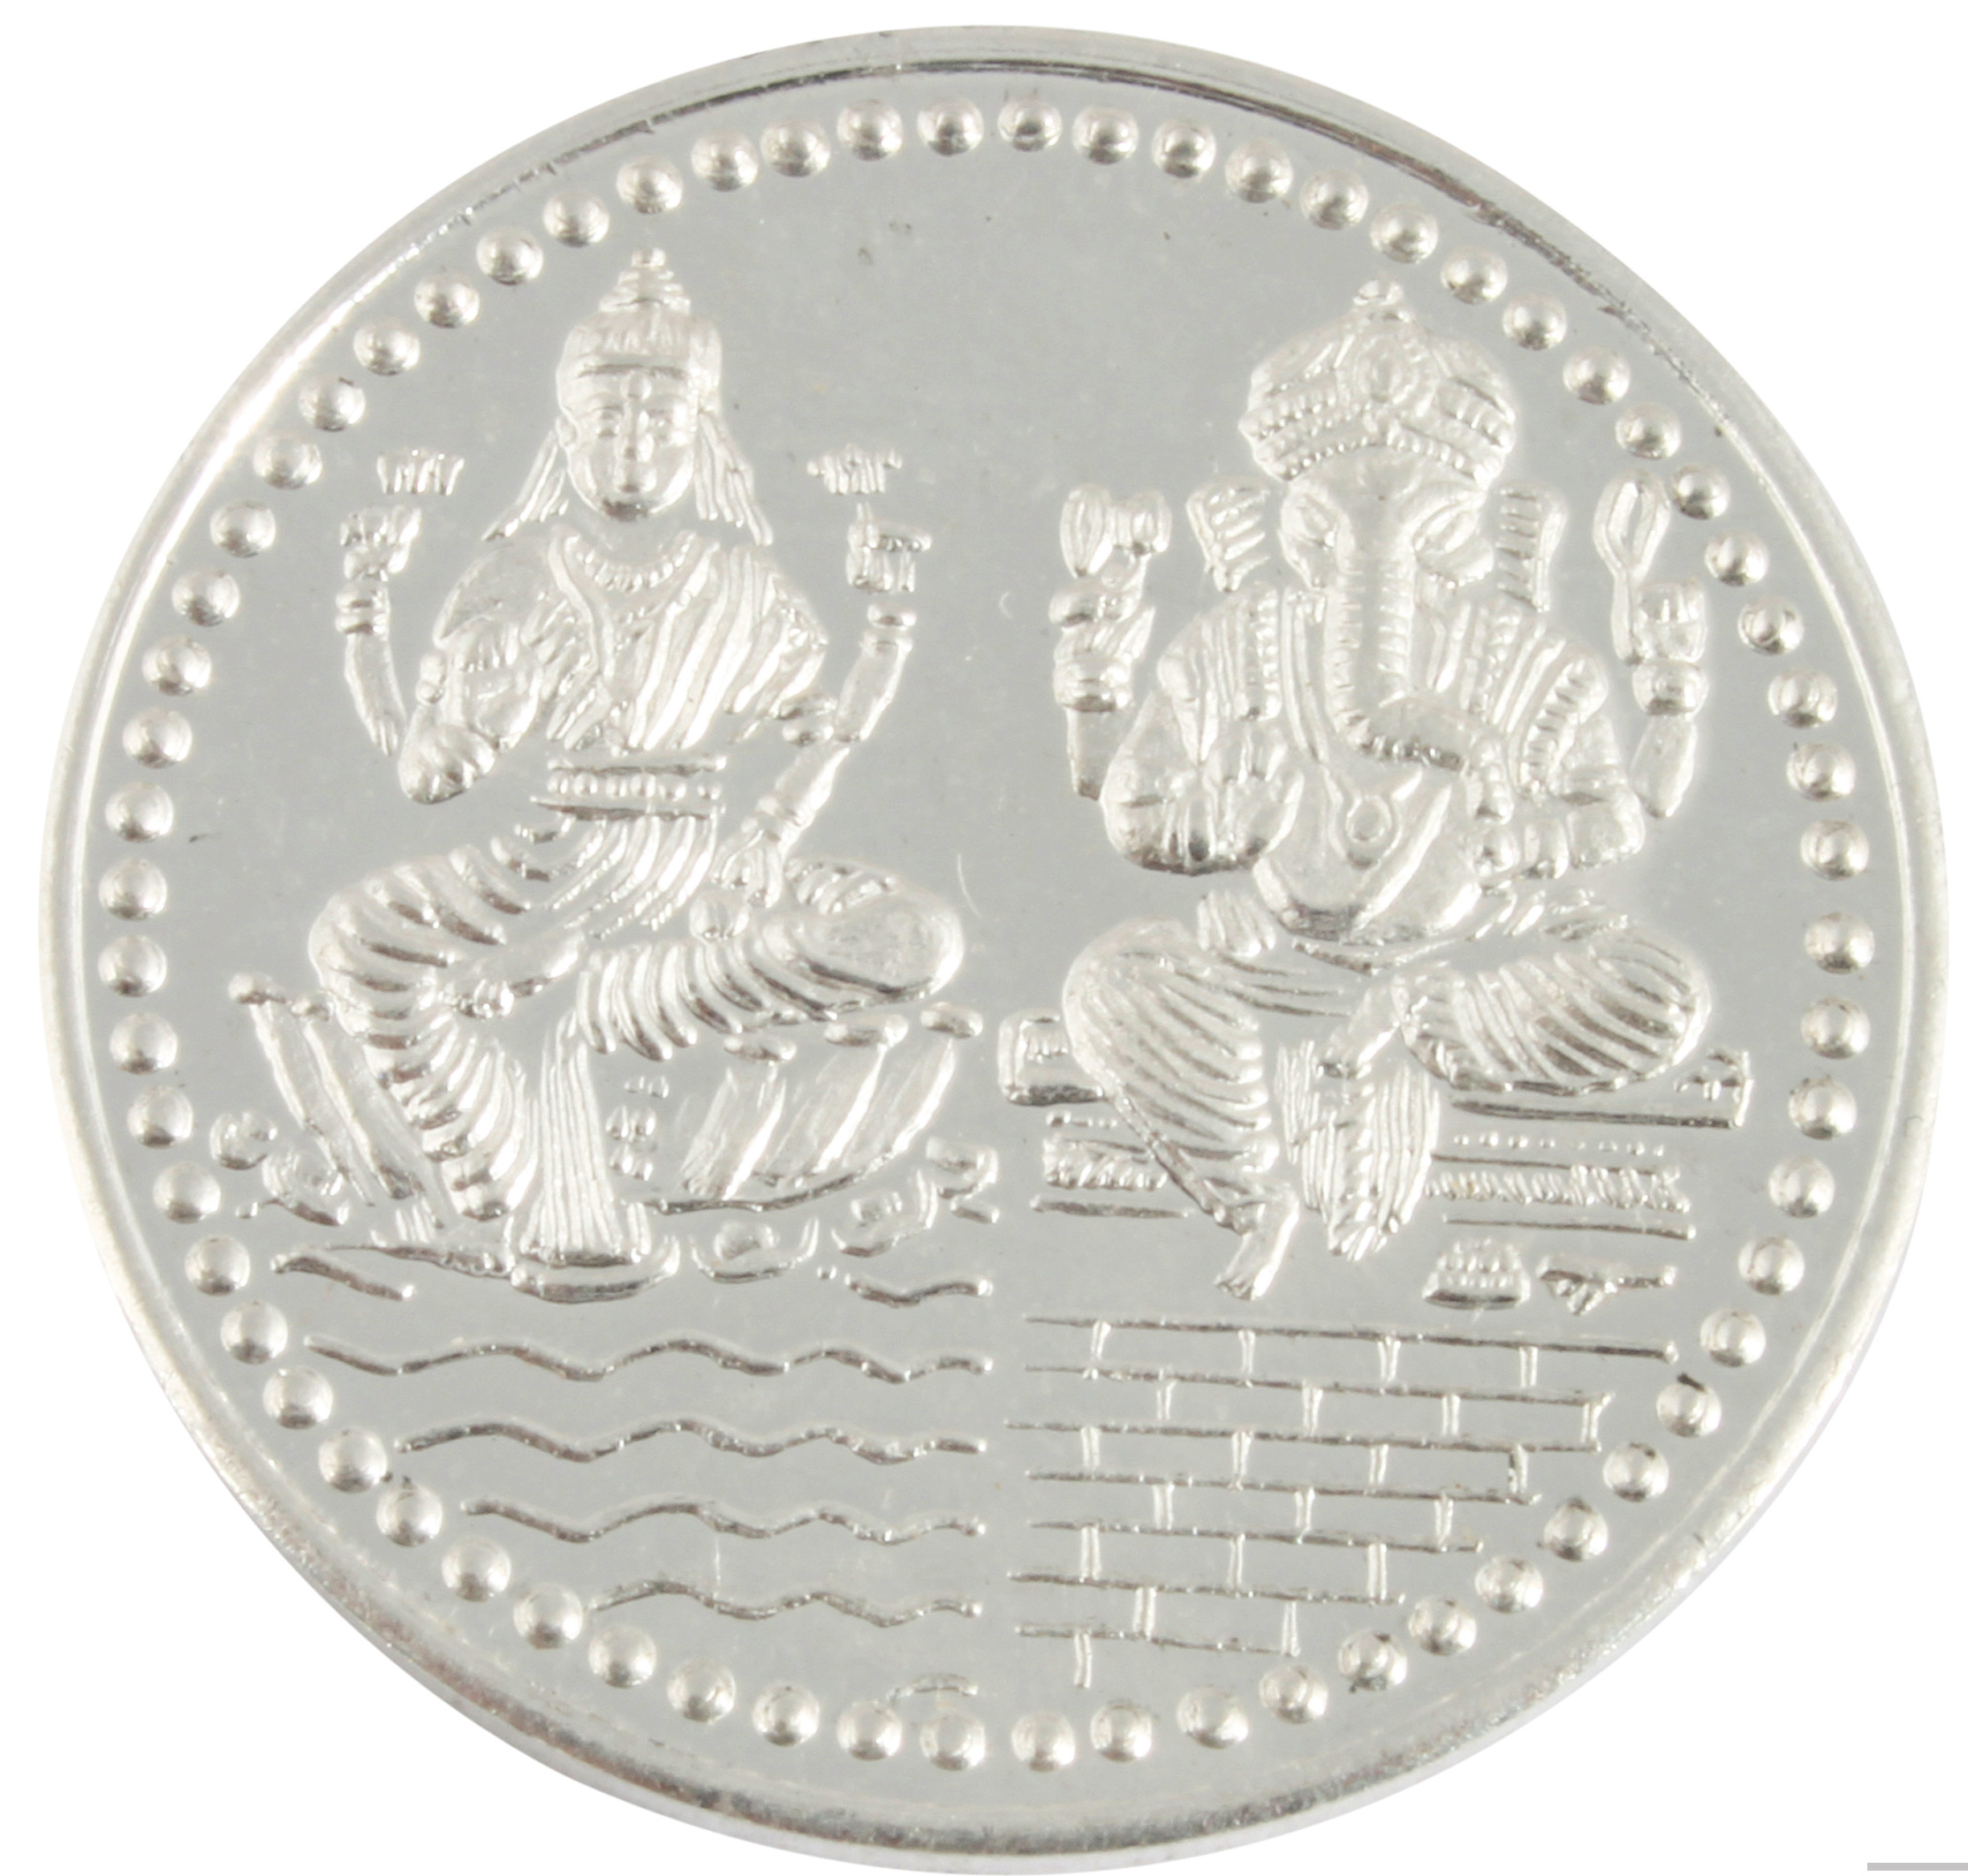 Buy 925 Silver Purity 10 Gram Silver Coin | KhannaJewels